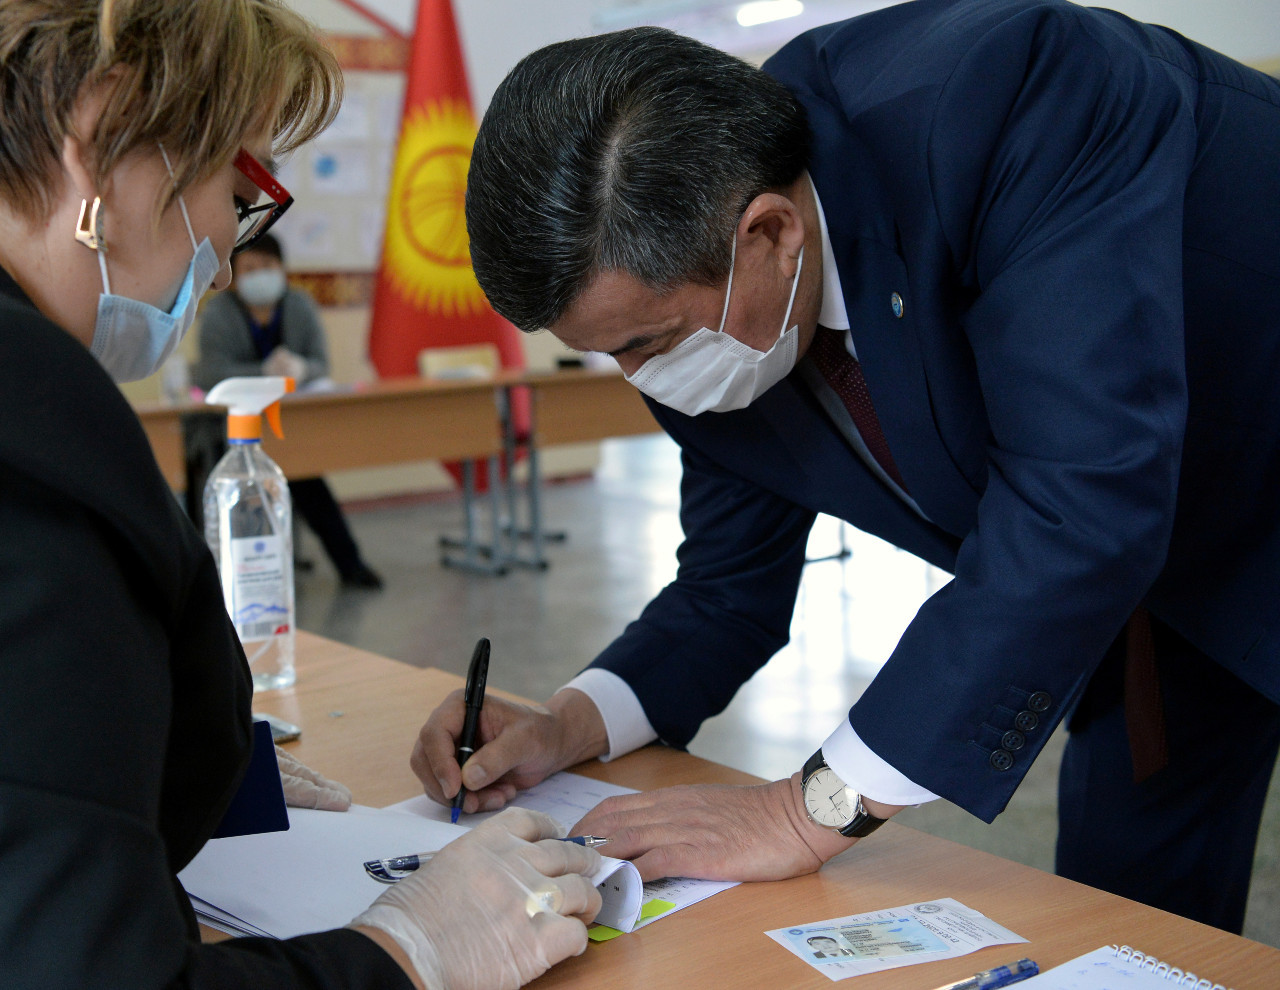 Kyrgyzstan holds election marked by voter disillusion and party splits